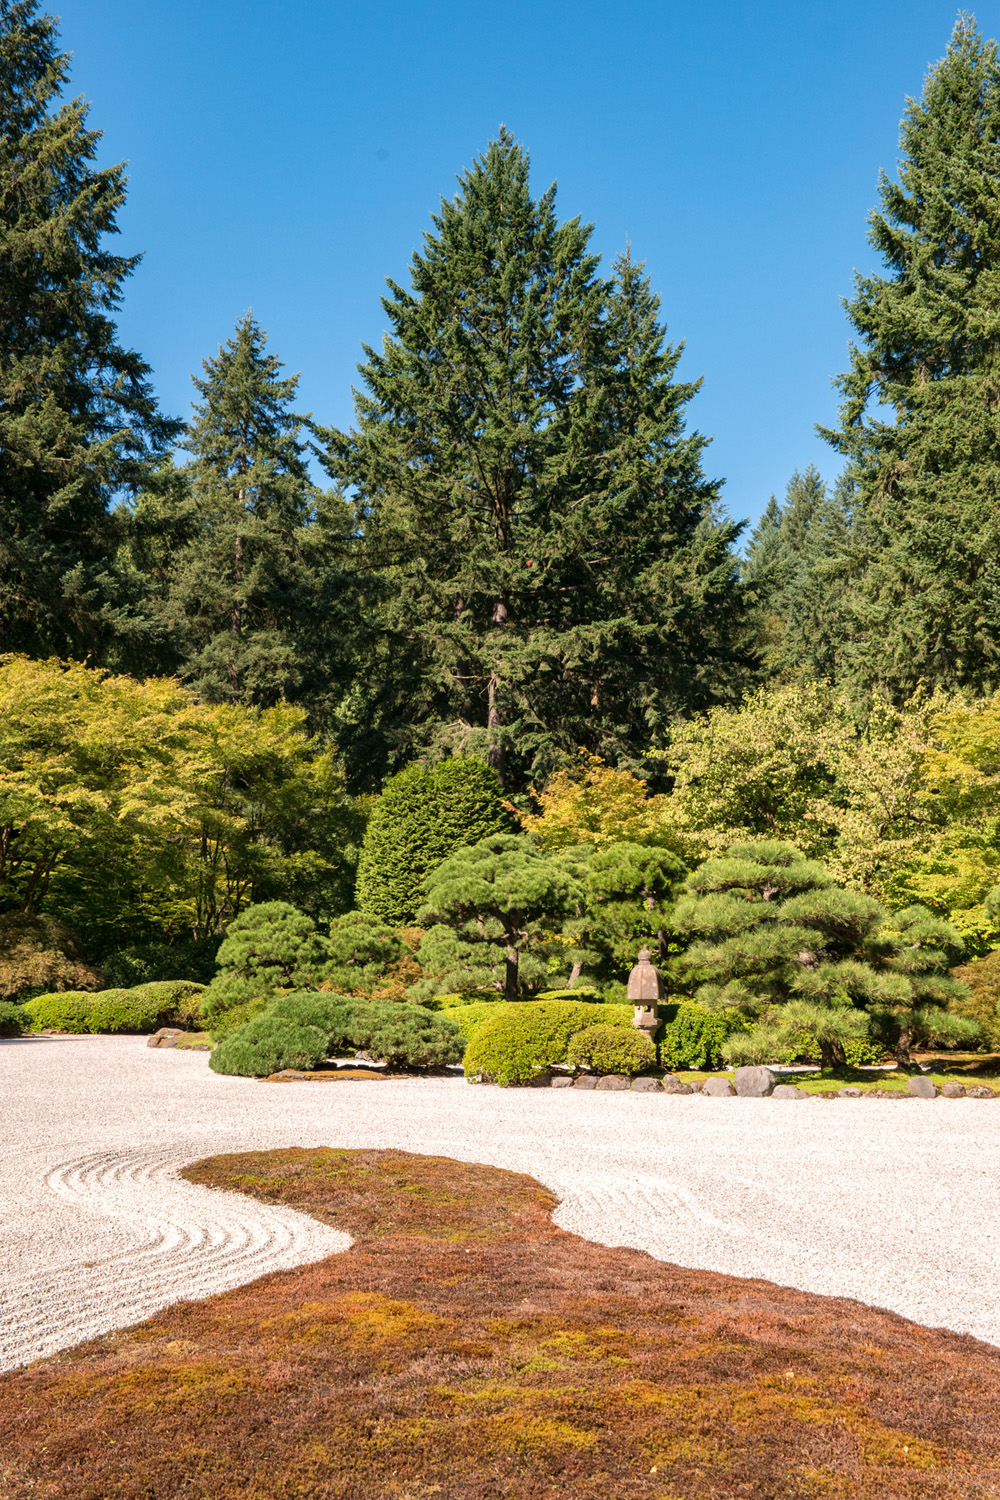 Wasim Muklashy Photography_Samsung NX1_Japanese Garden_Portland_Oregon_ SAM_6491-Edit-2.jpg